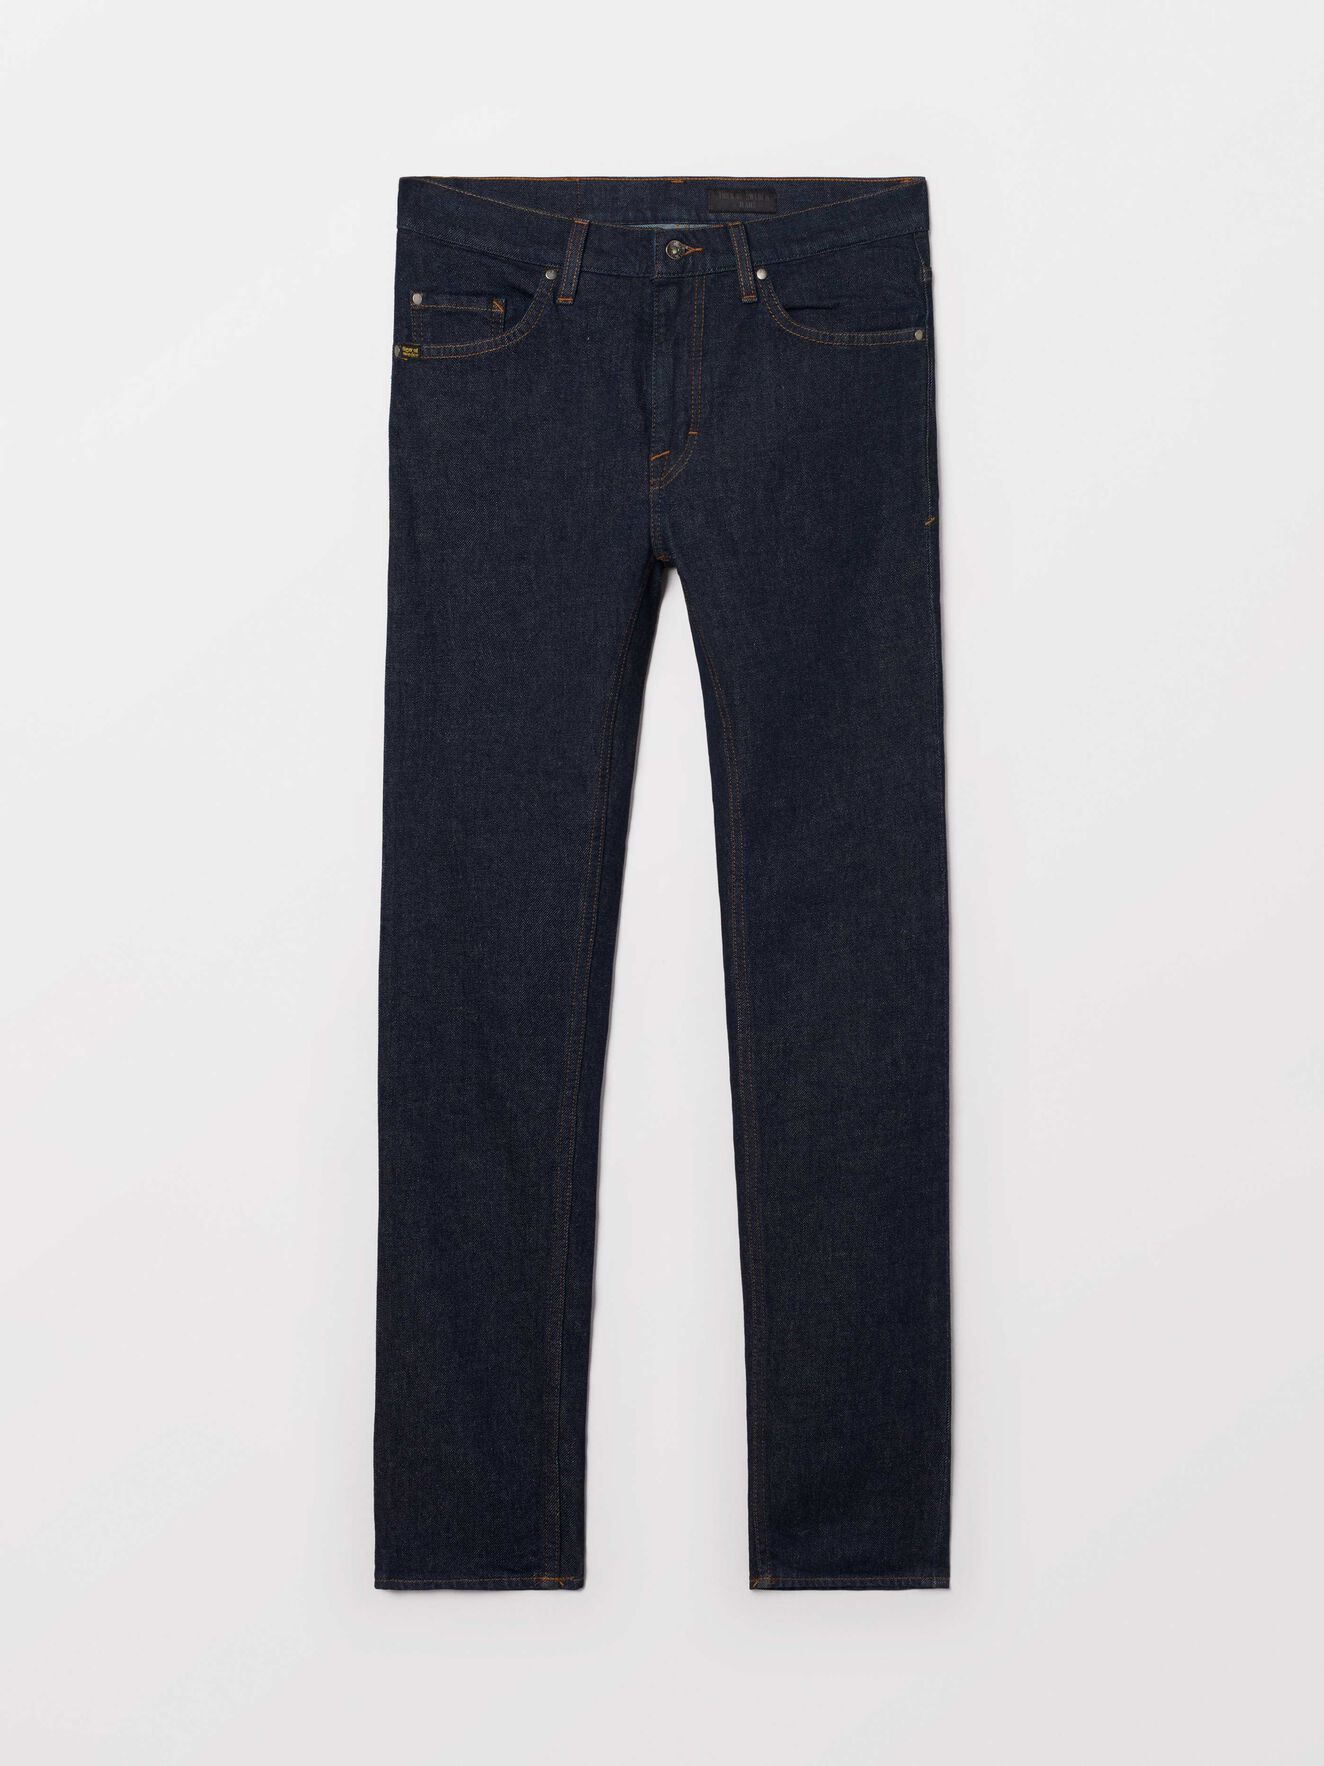 Pistolero Jeans in Midnight blue from Tiger of Sweden